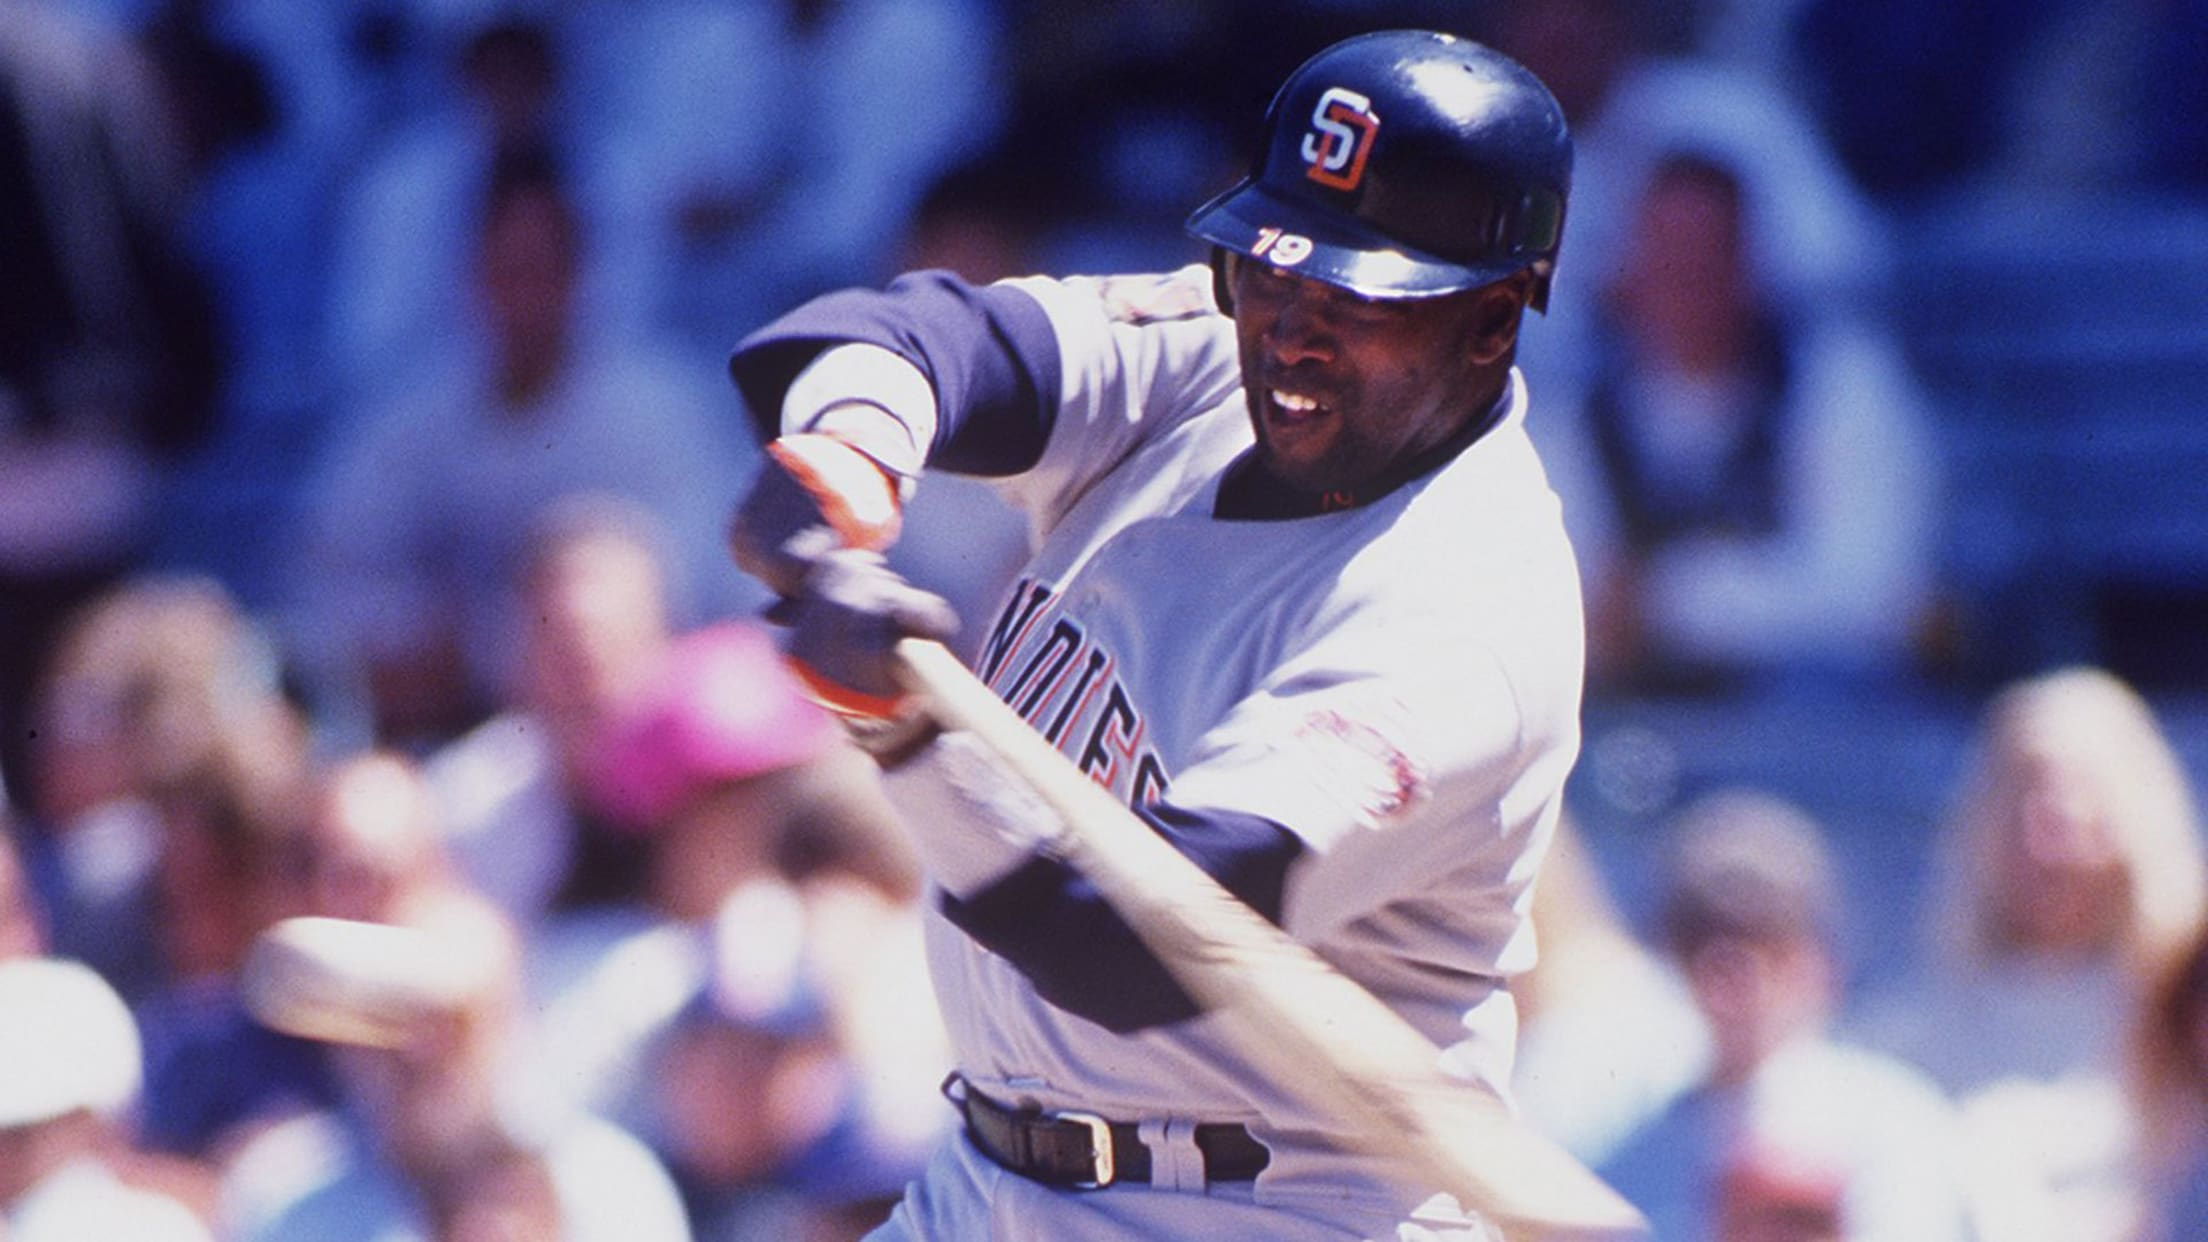 gwynn_tony_swing_94_1920